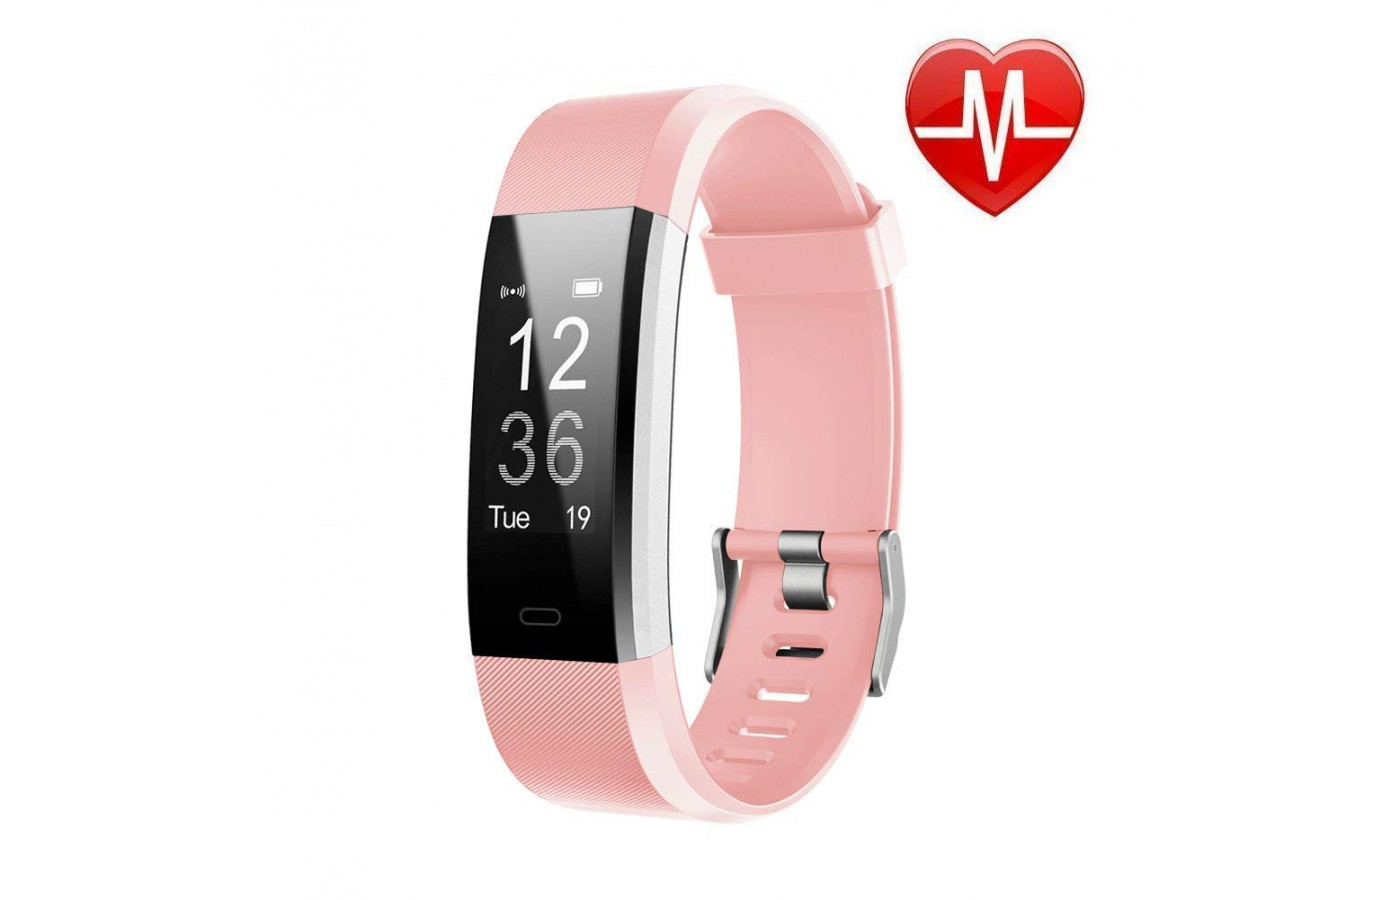 Tech-Gift-Guide-Letscom-watch-with-heart-icon-on-white-background.jpg